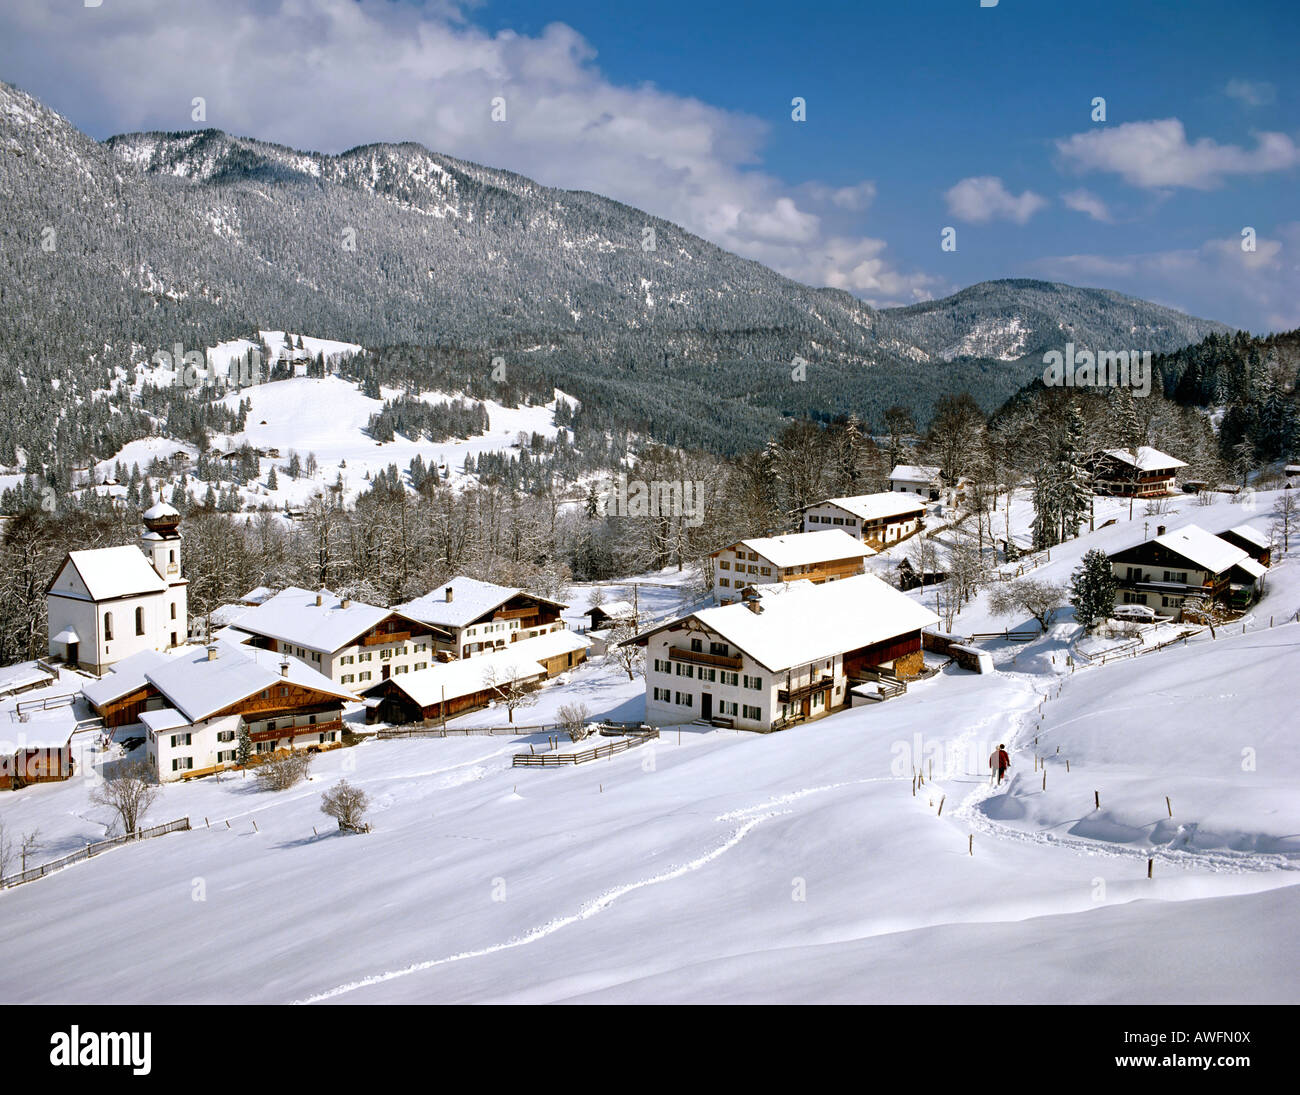 Farmhouses in the town of Wamberg with the Ester Range in the background, wintertime, Upper Bavaria, Bavaria, Germany, - Stock Image